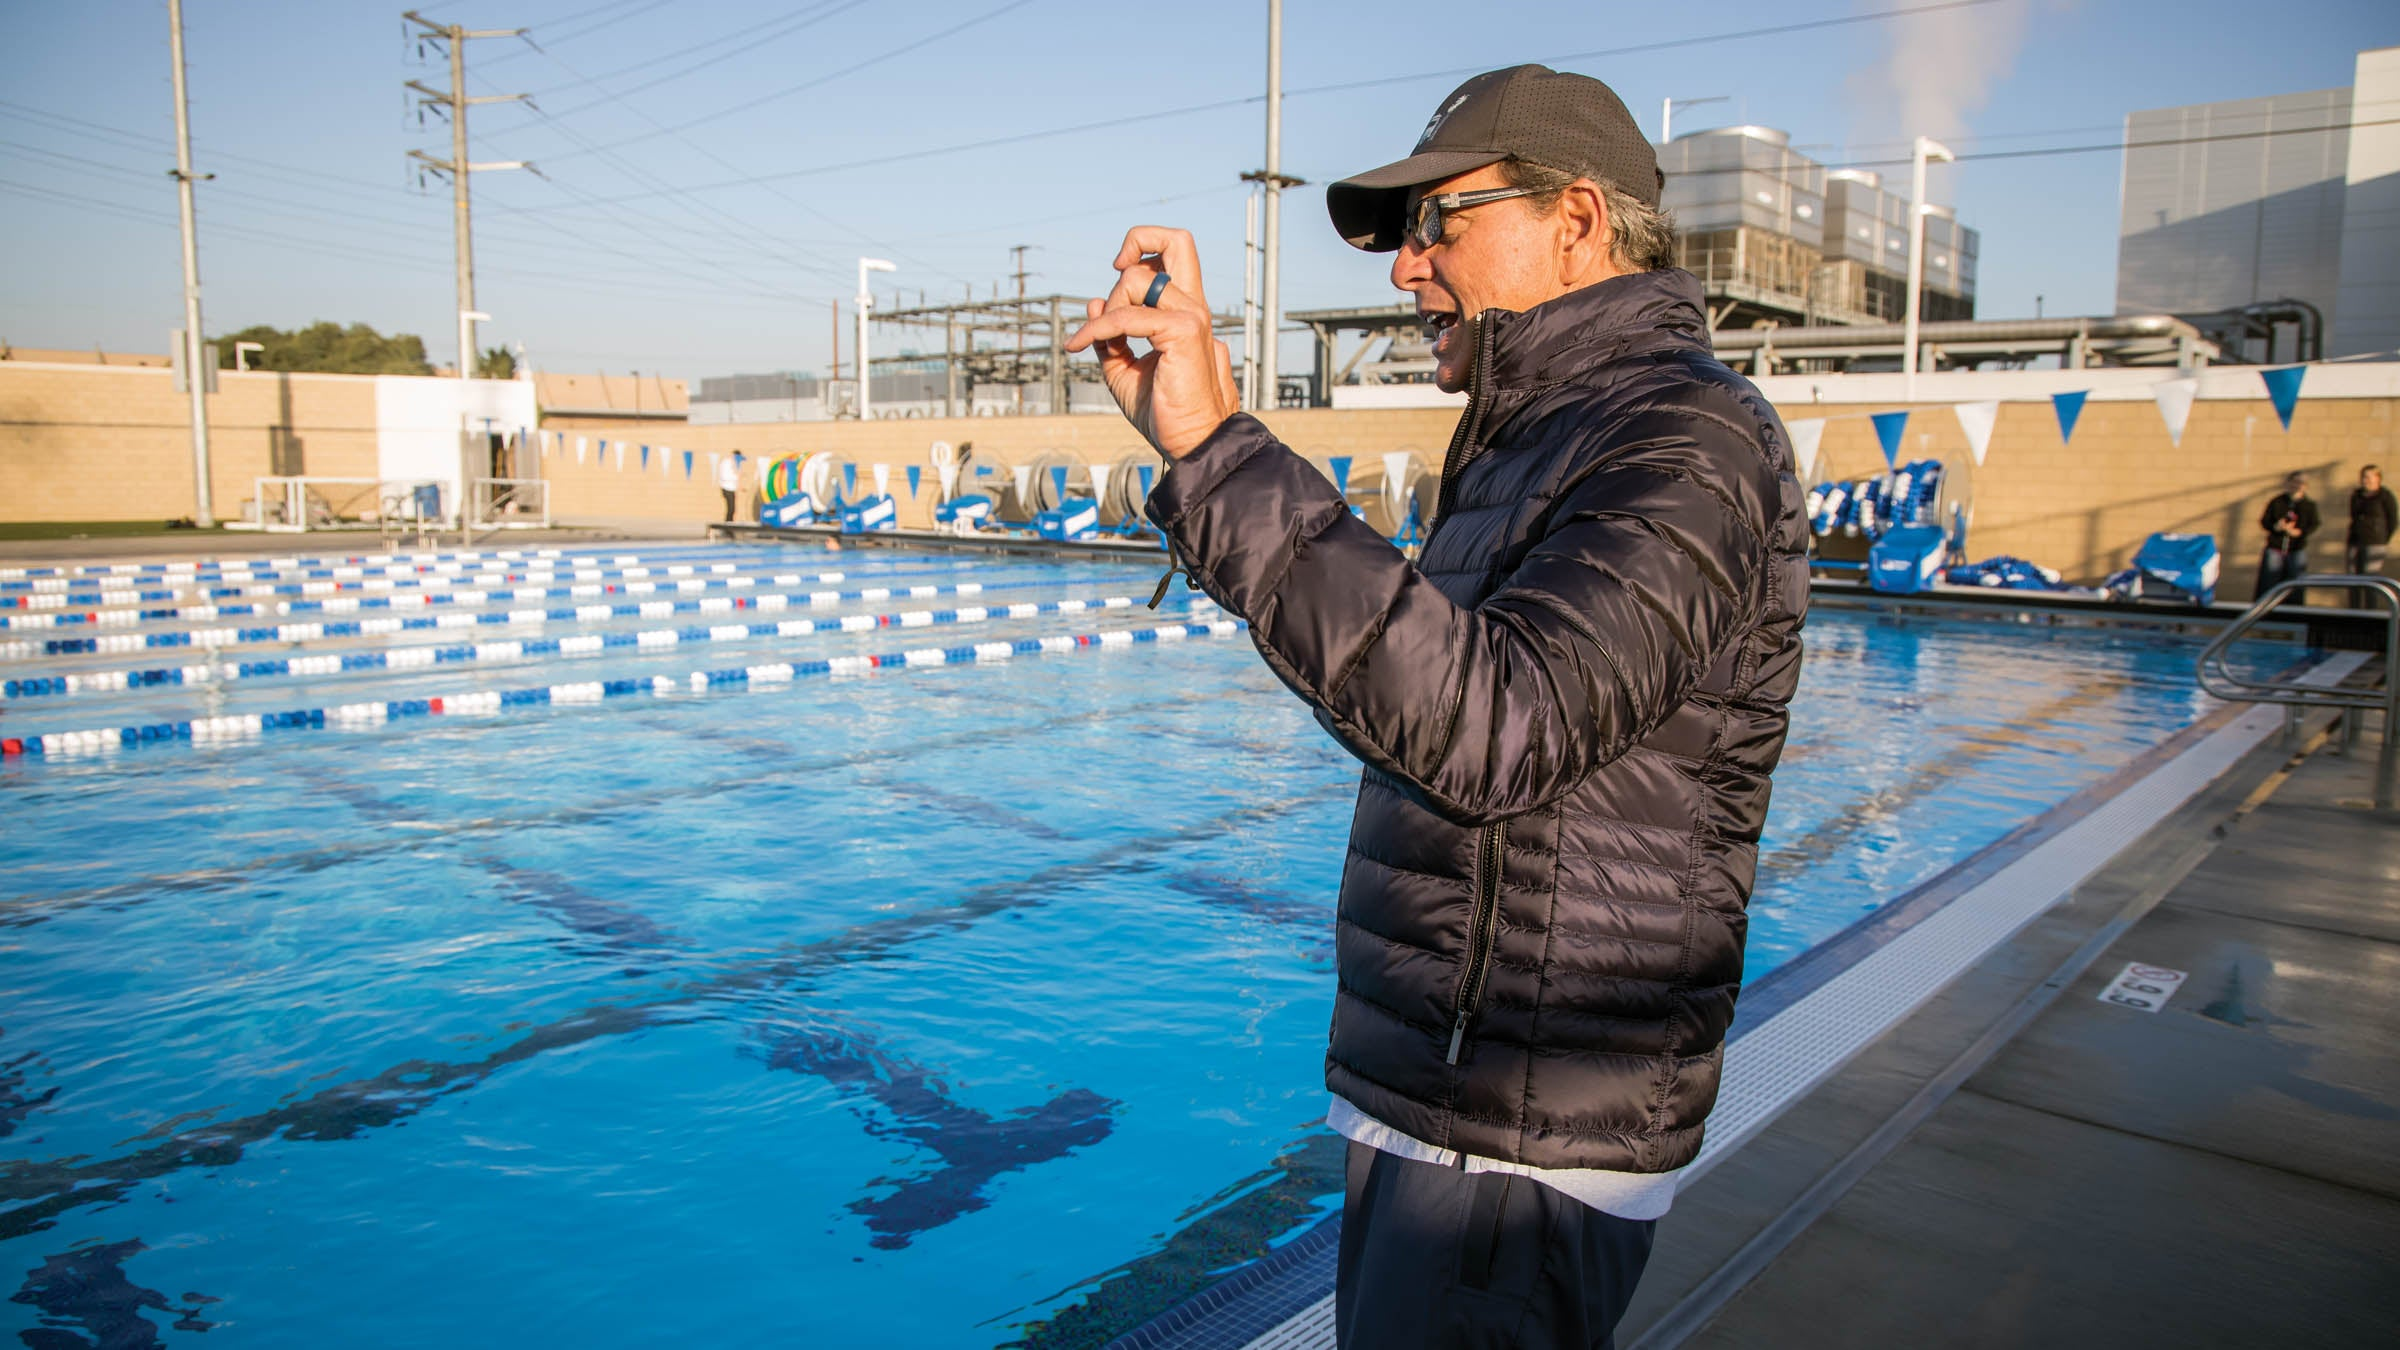 Gerry Rodrigues coaching athletes in the pool